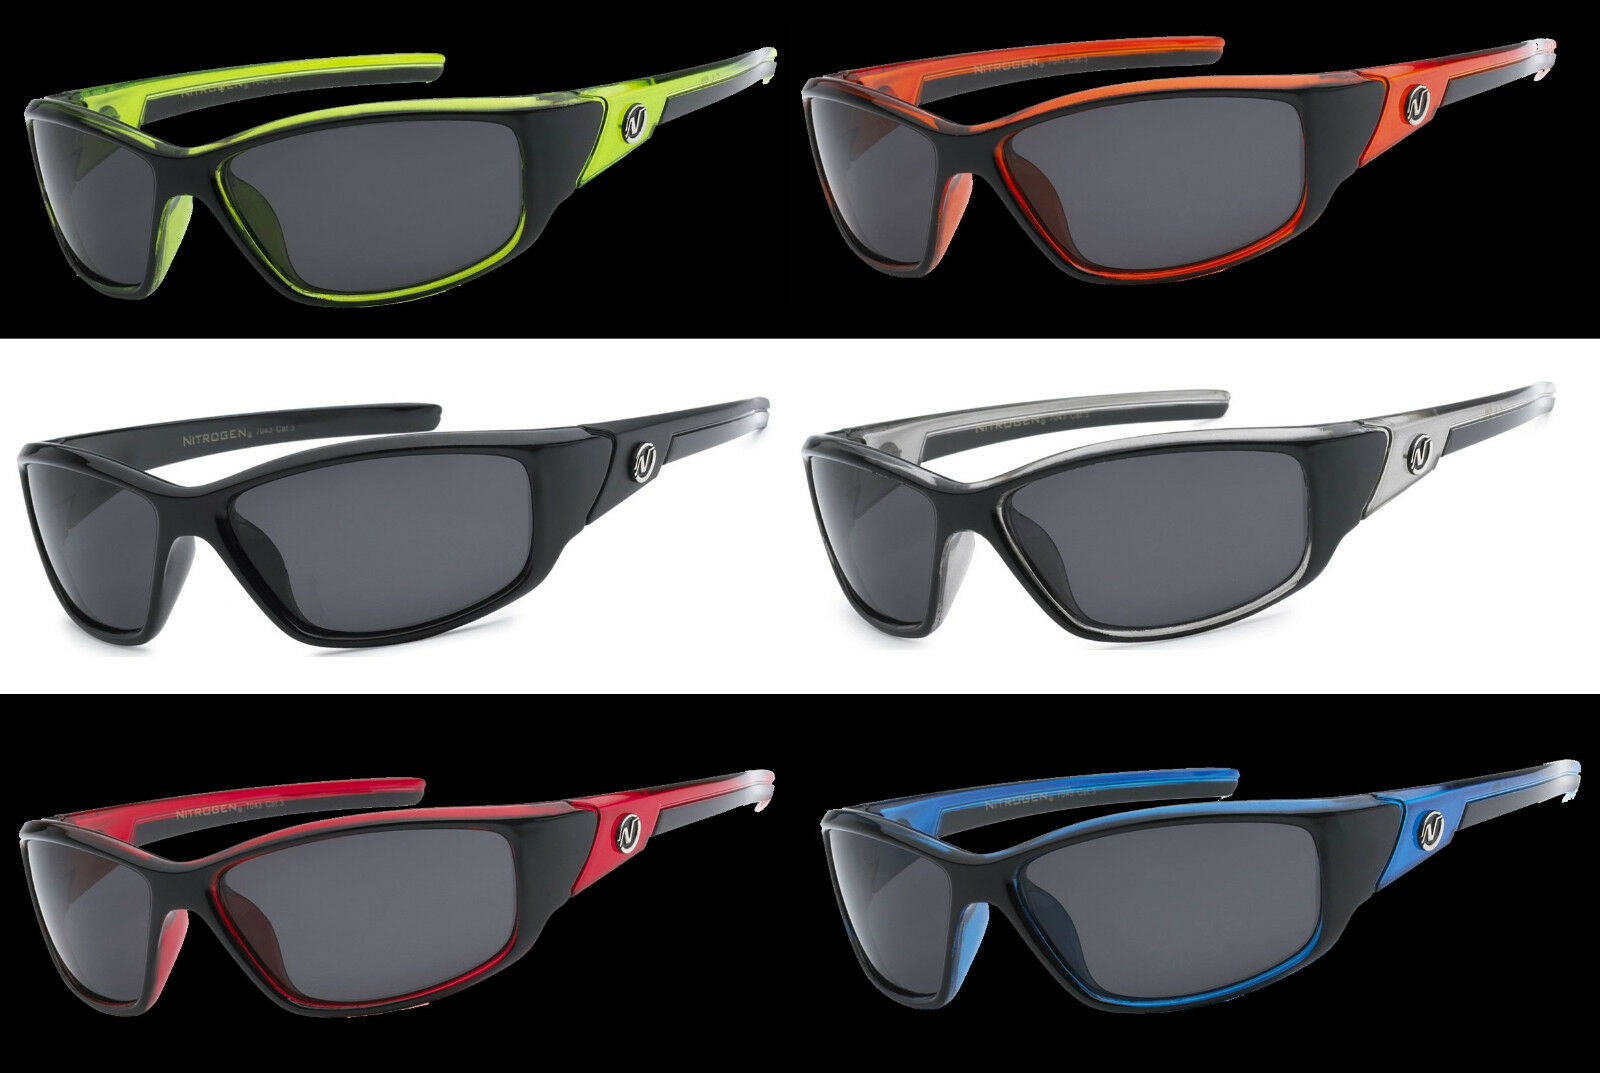 ffce0441c2 Details about Polarized Nitrogen Sunglasses Wrap Sport Running Fishing  Golfing Driving Glasses